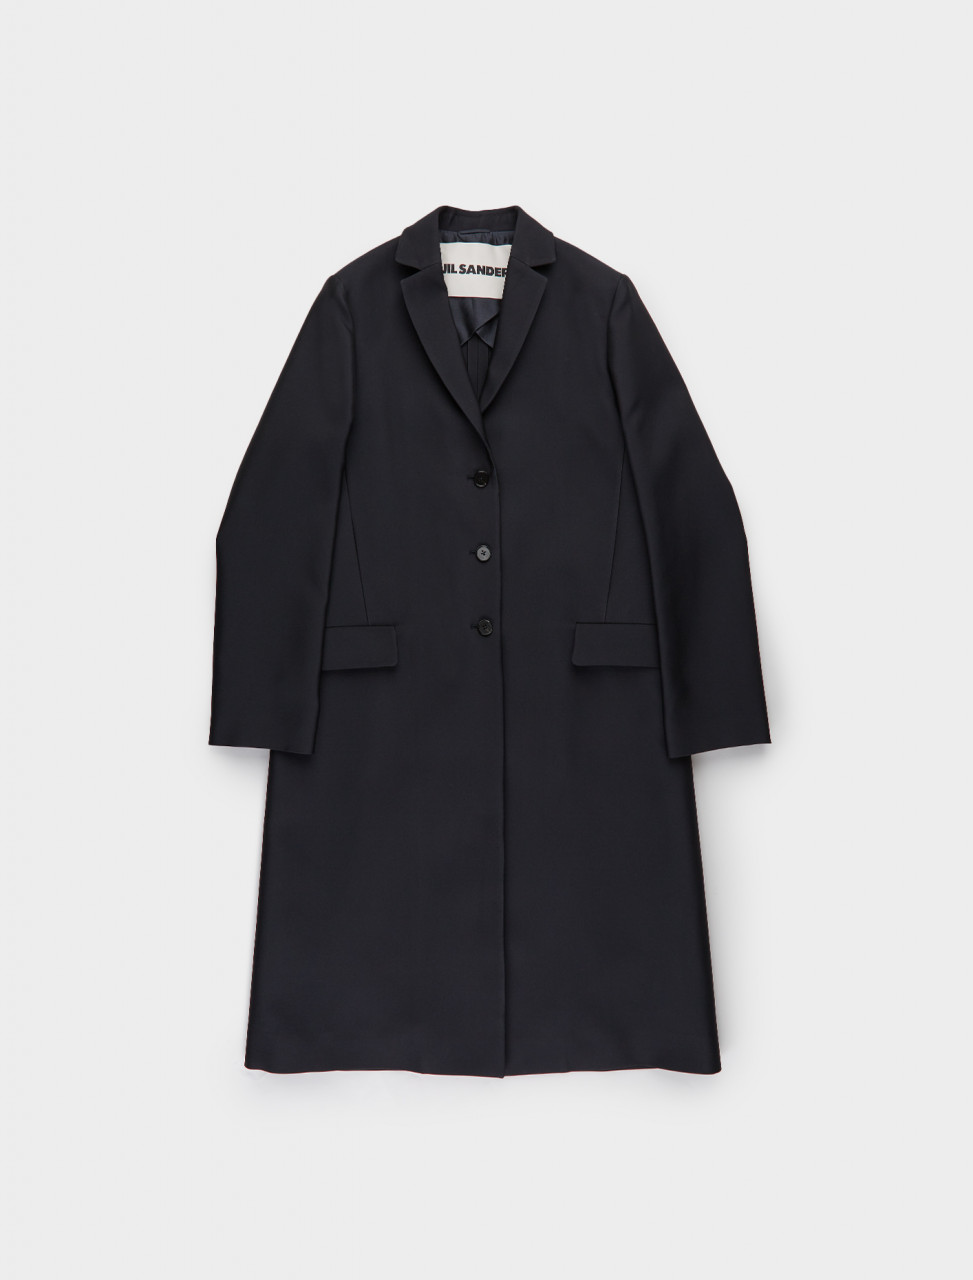 130-JSER110022-WR470300-401 JIL SANDER Essential Coat in Dark Blue